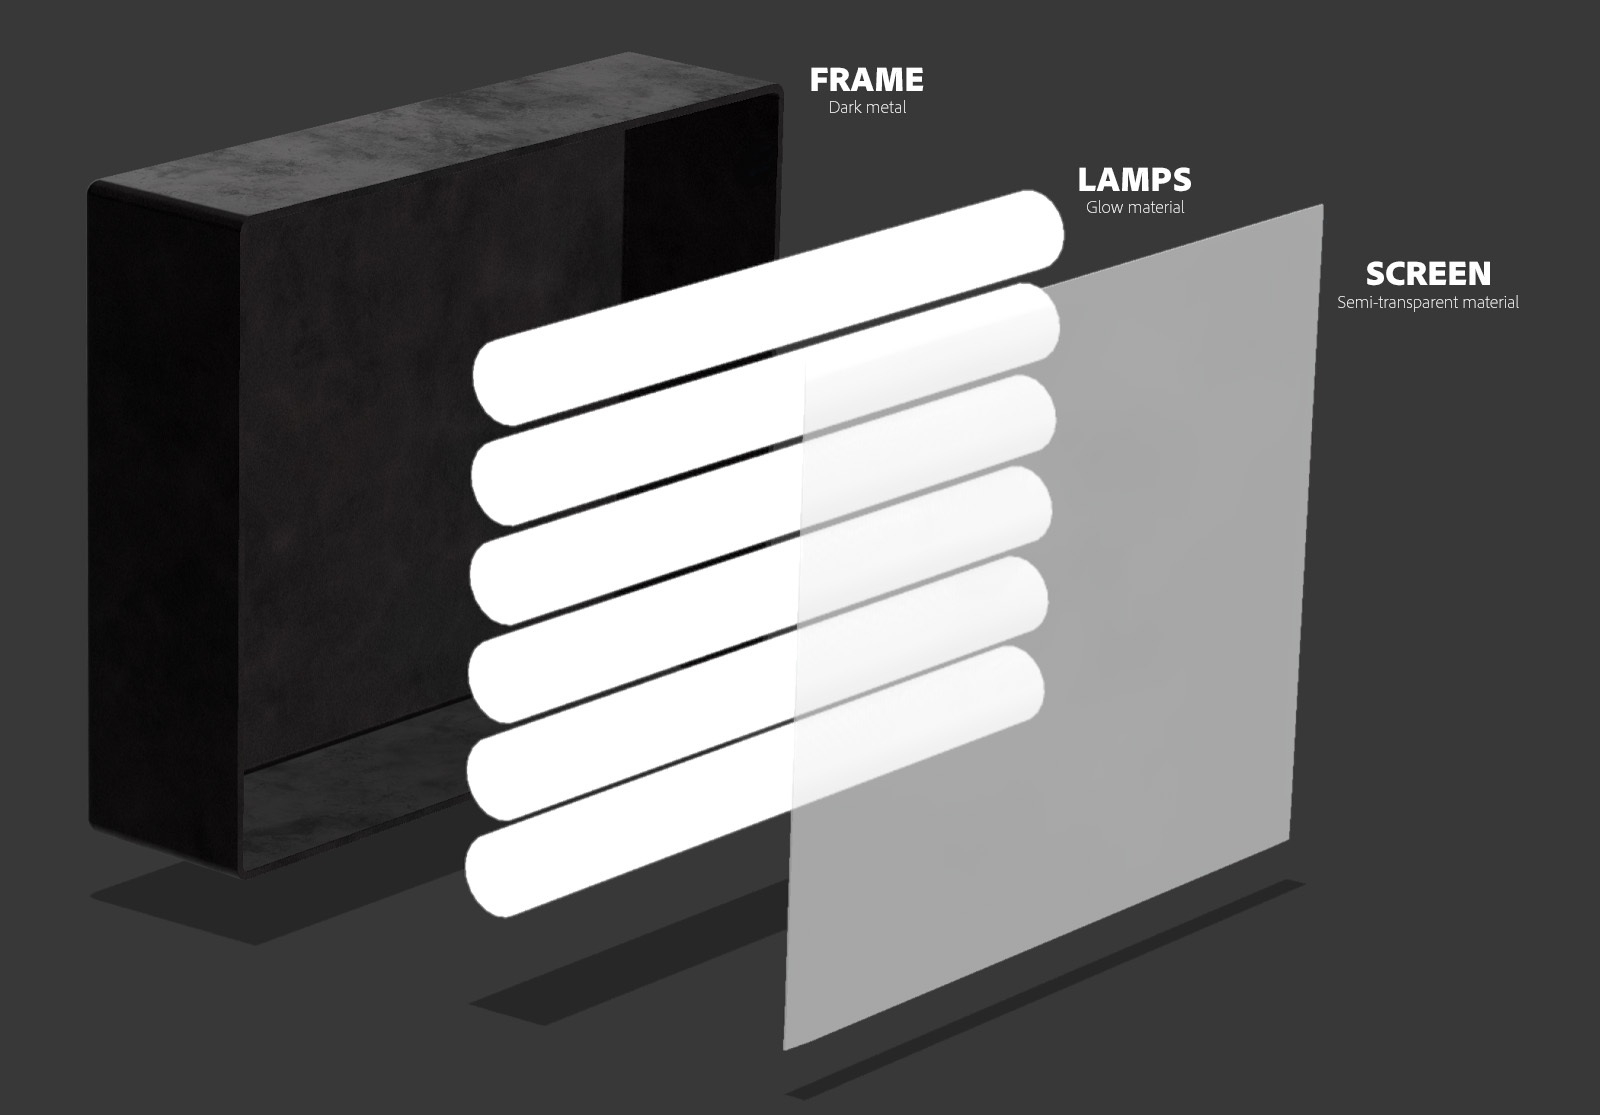 A softbox from a 3D lighting setup is deconstructed into a frame, lamps and screen